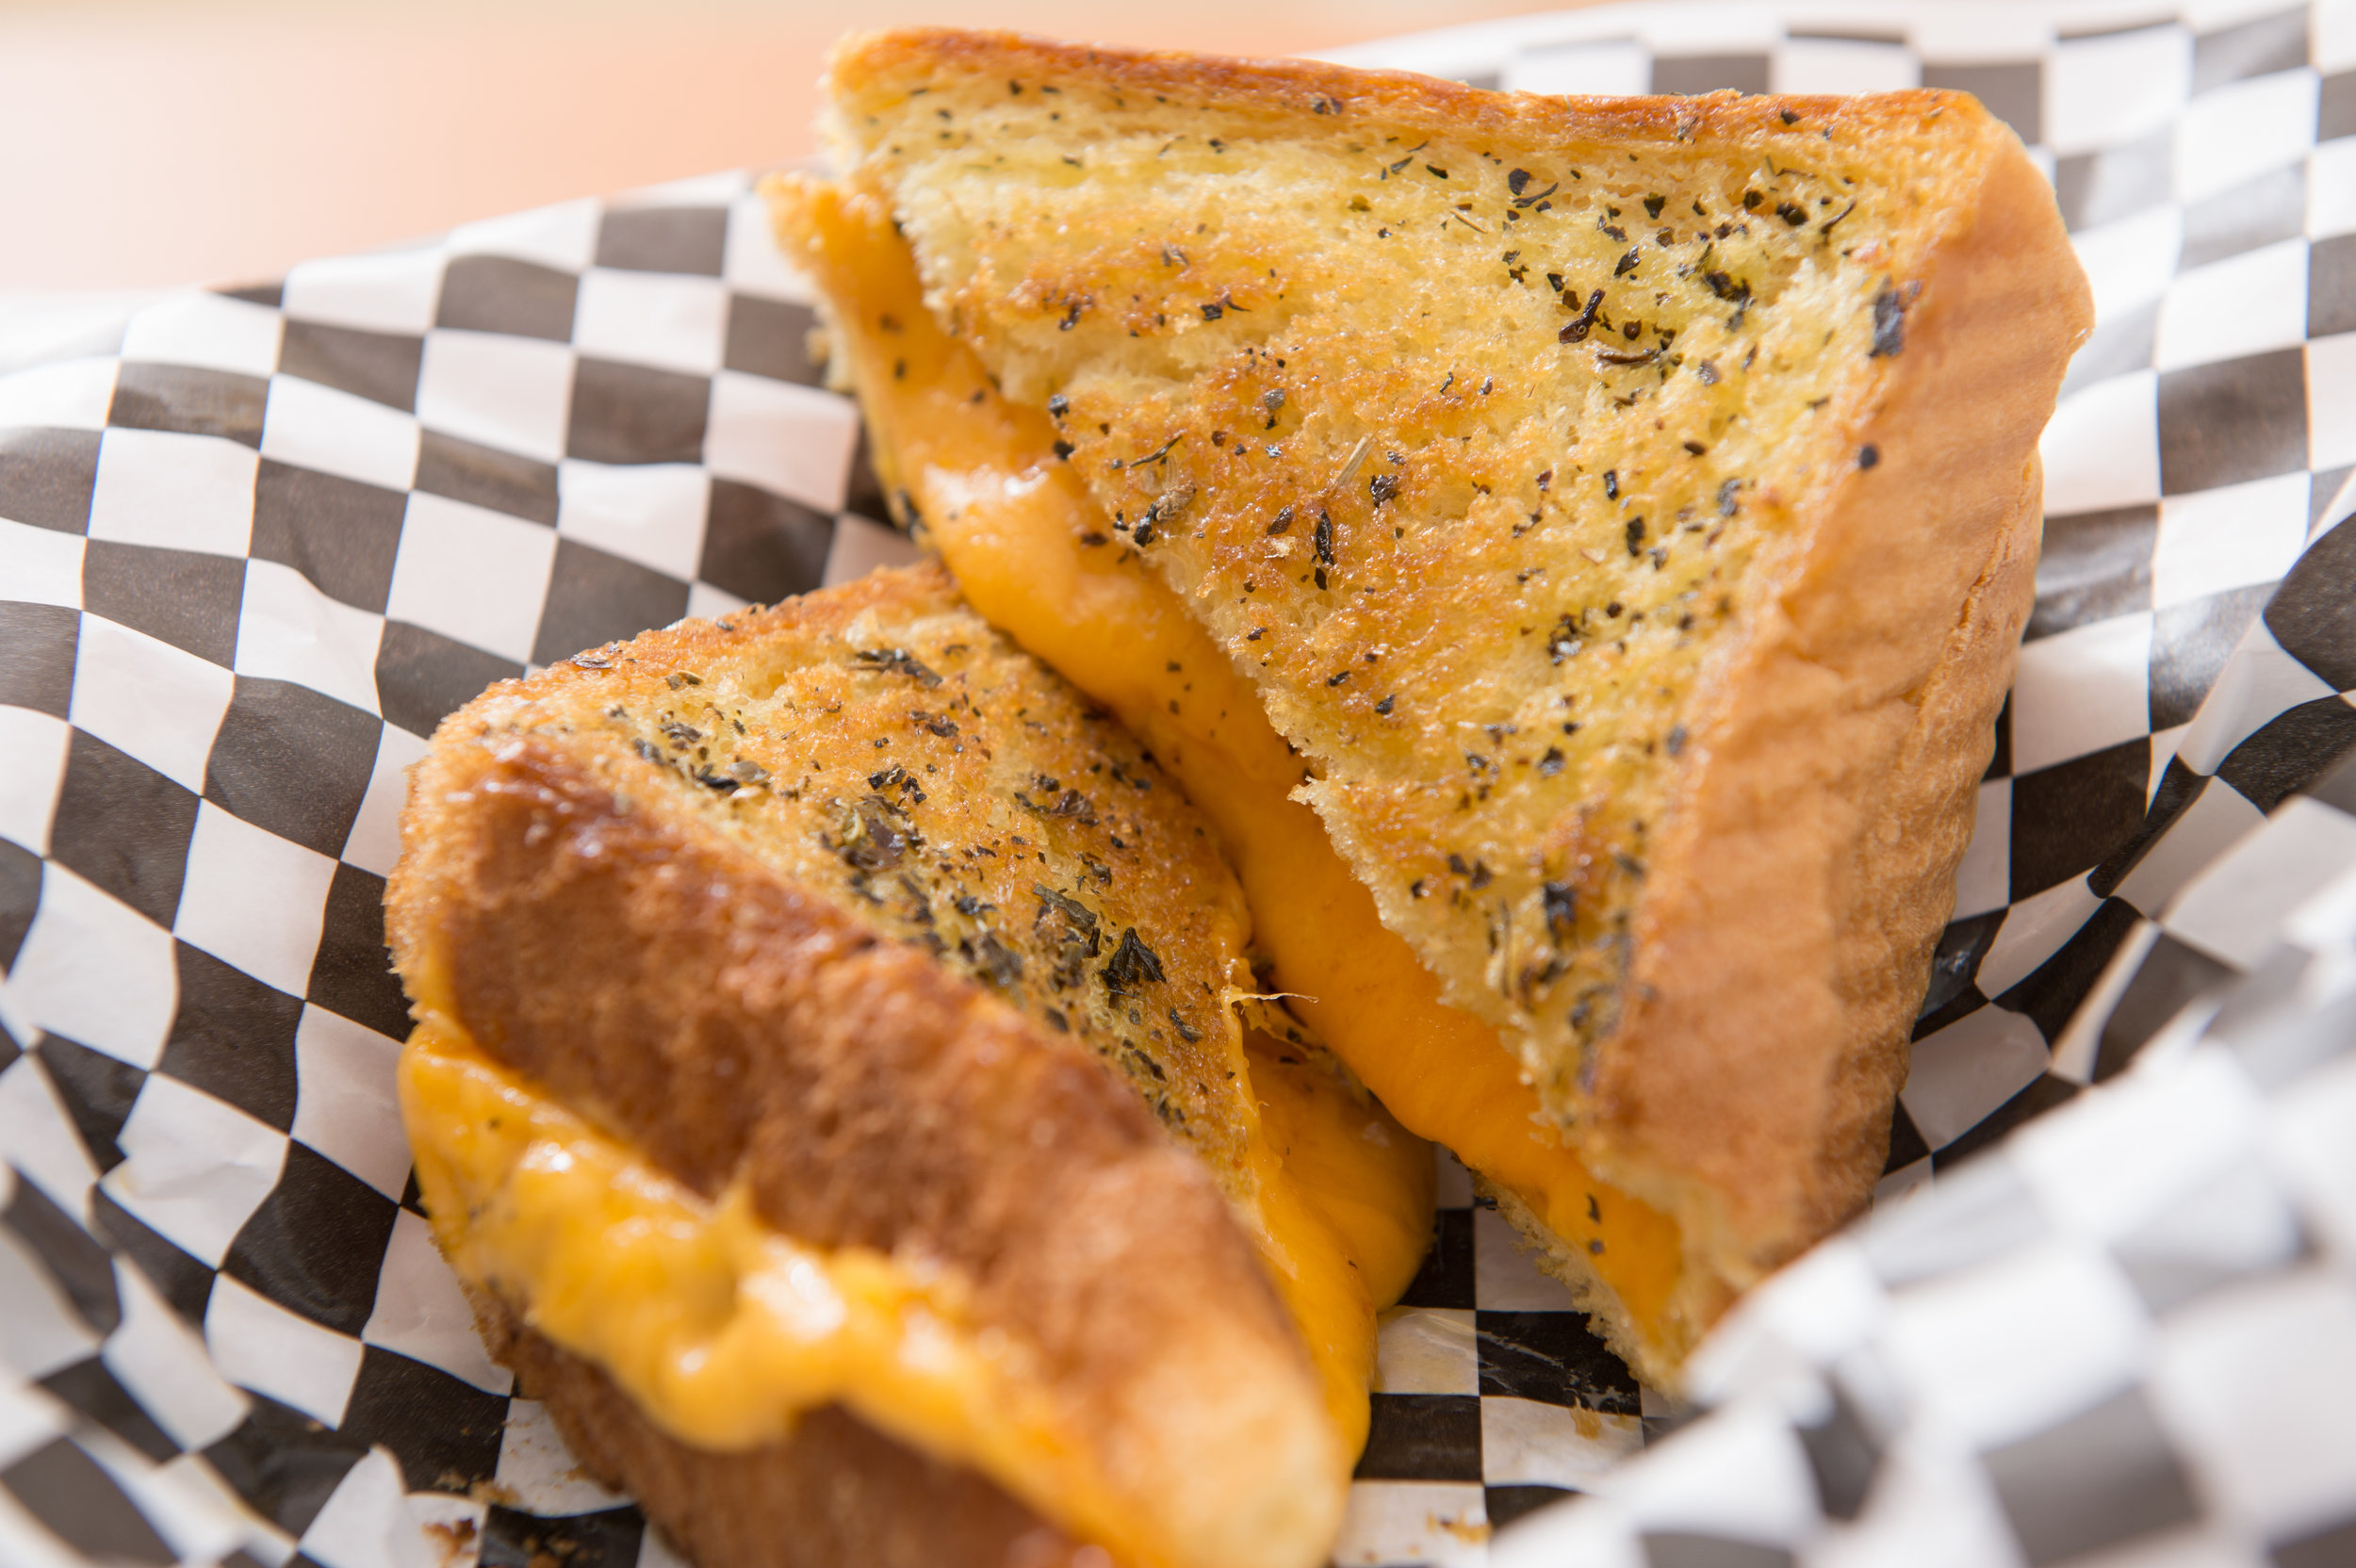 Old School  - Cheddar cheese on basil buttered grilled texas toast.